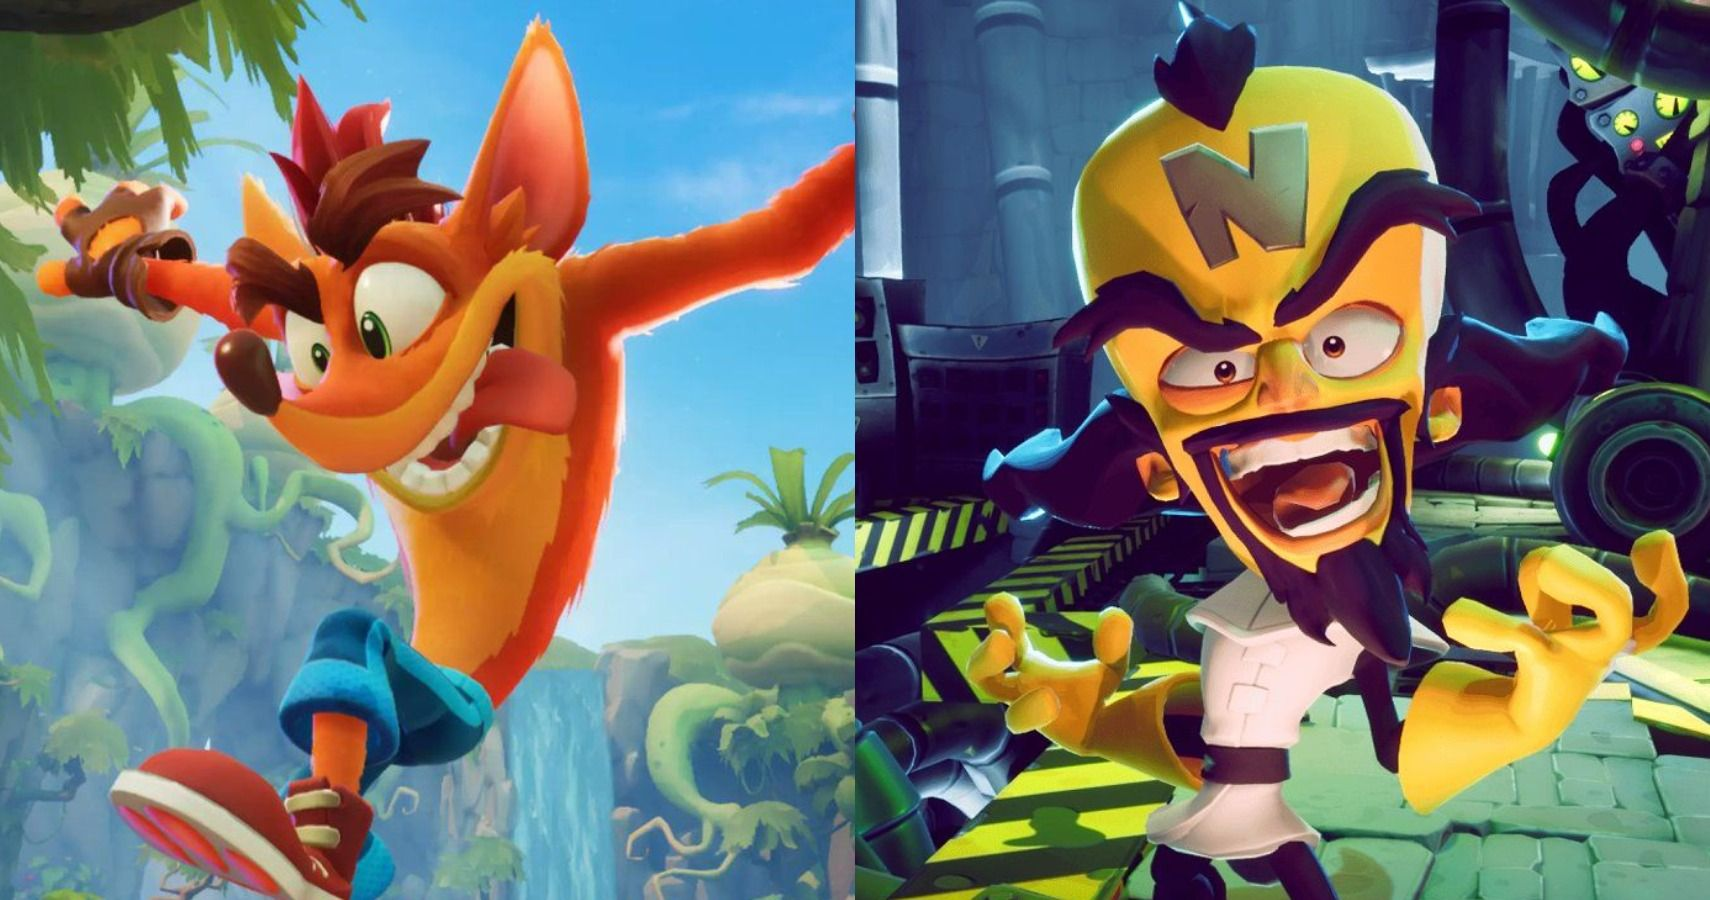 Crash Bandicoot Voice Actors Are Working On A New Project